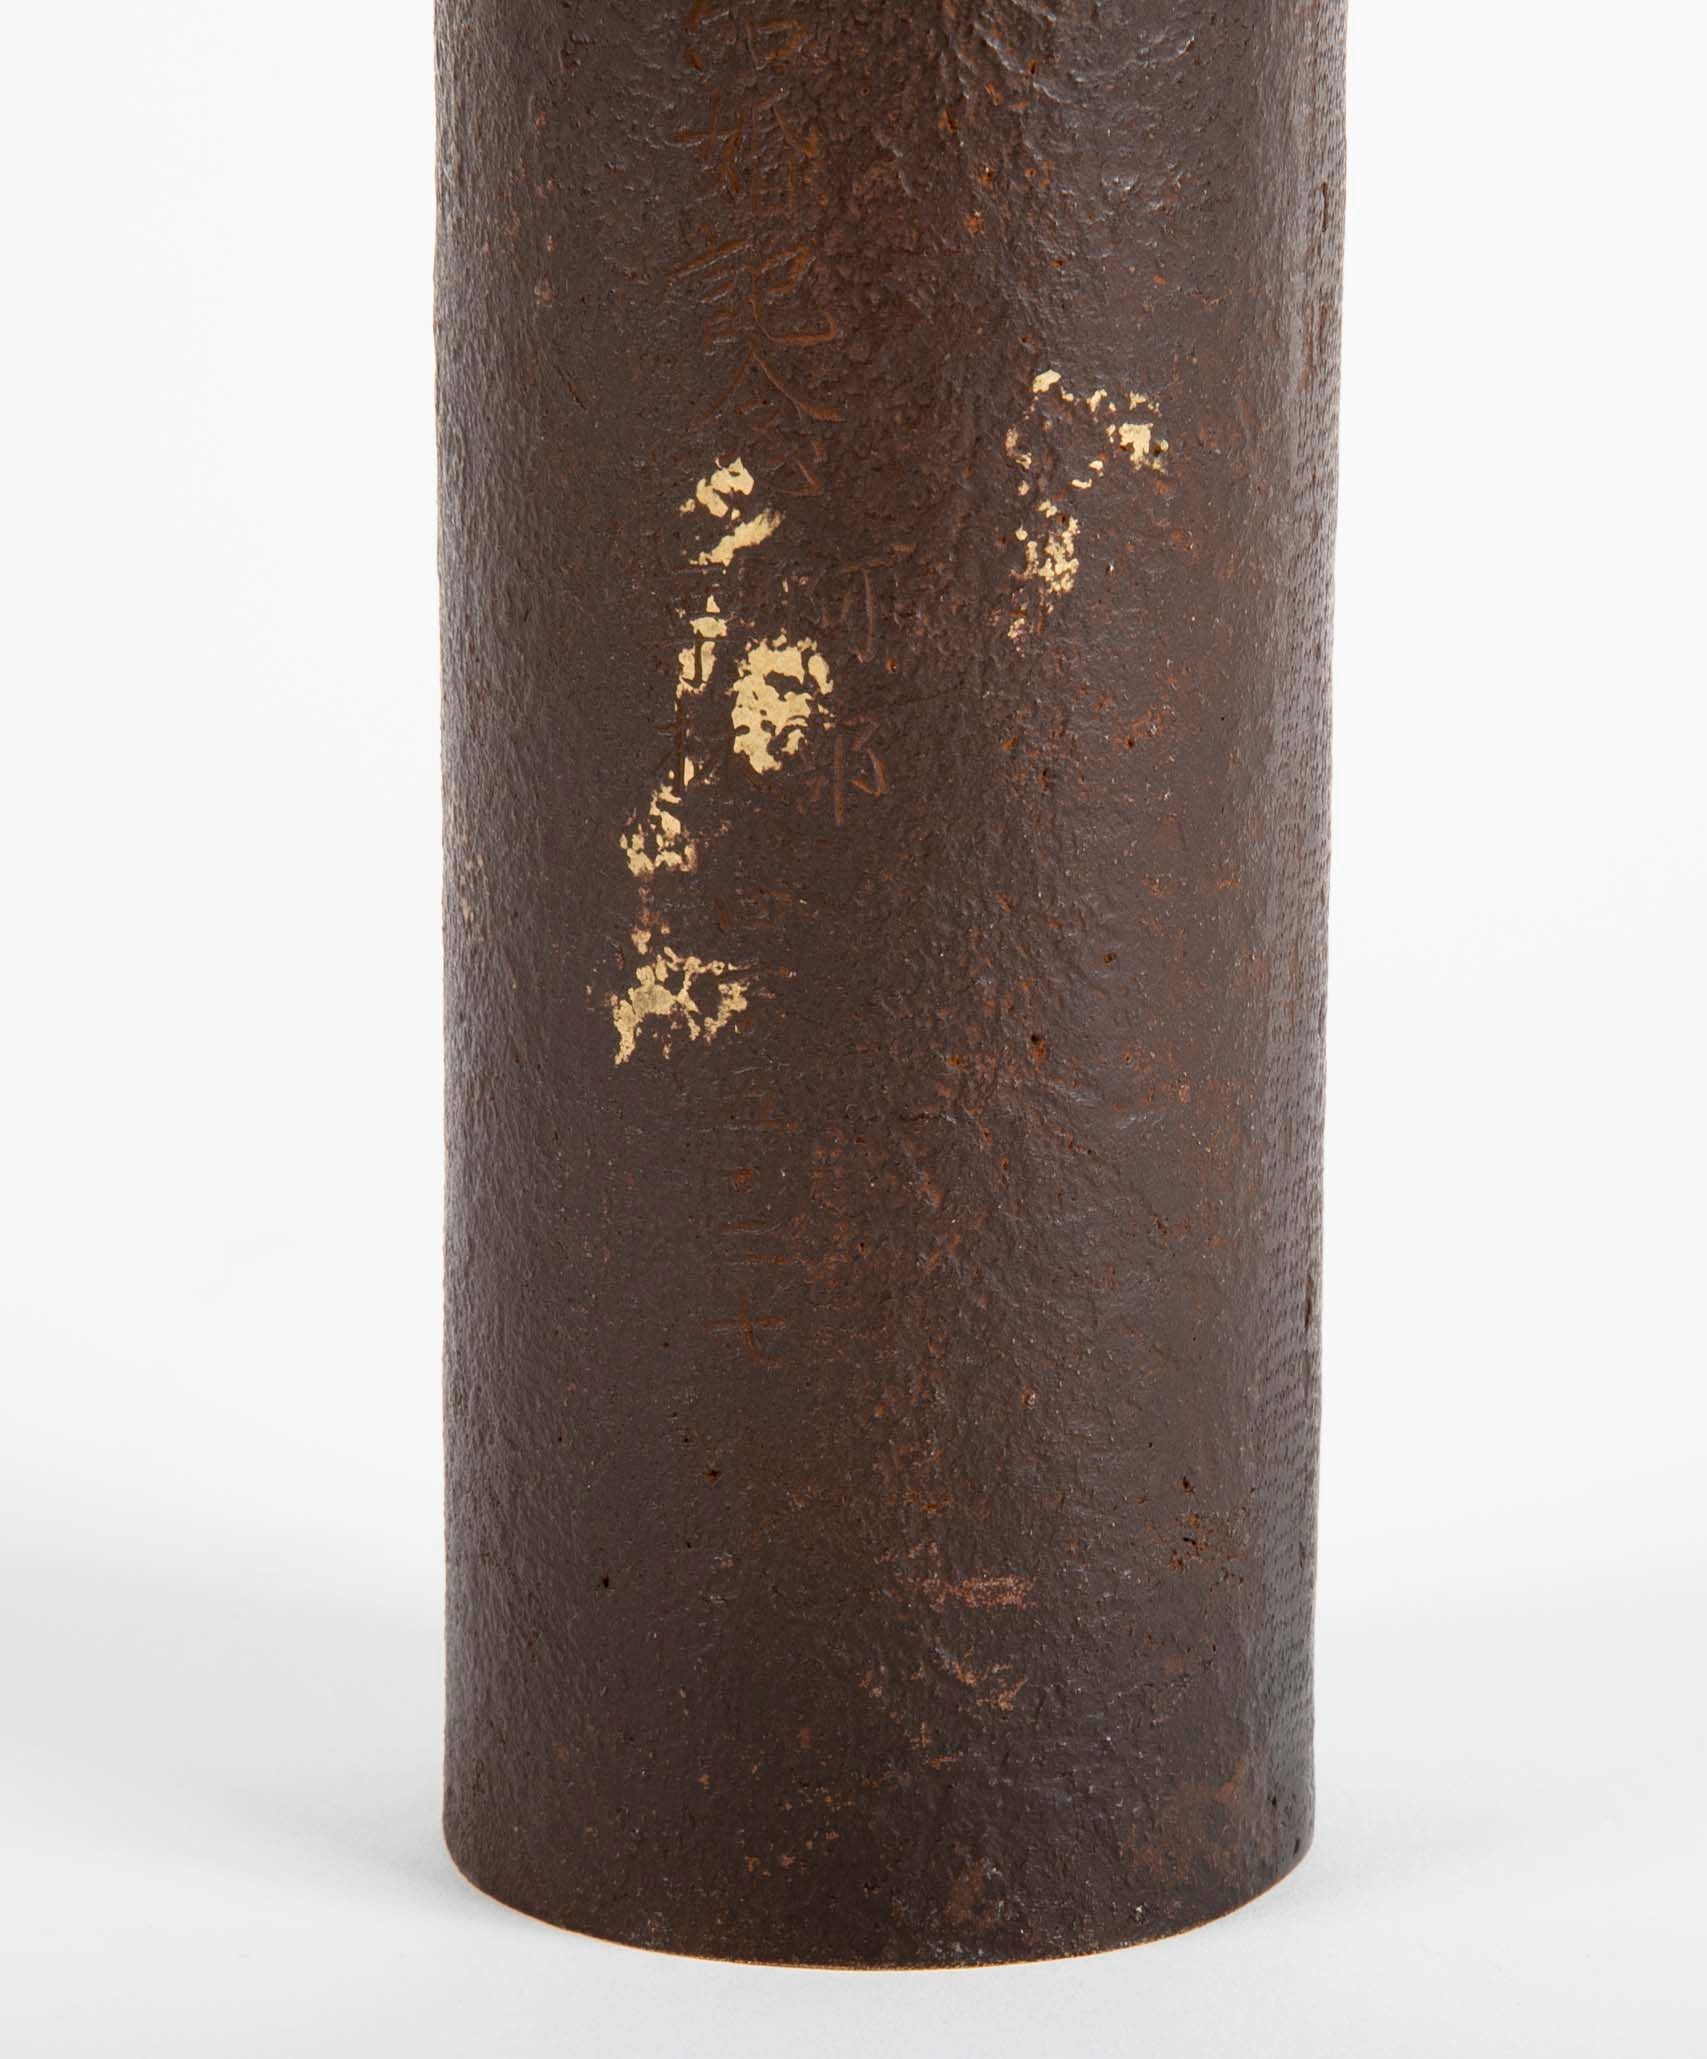 A Japanese Sleeve Vase with Gold Splashes